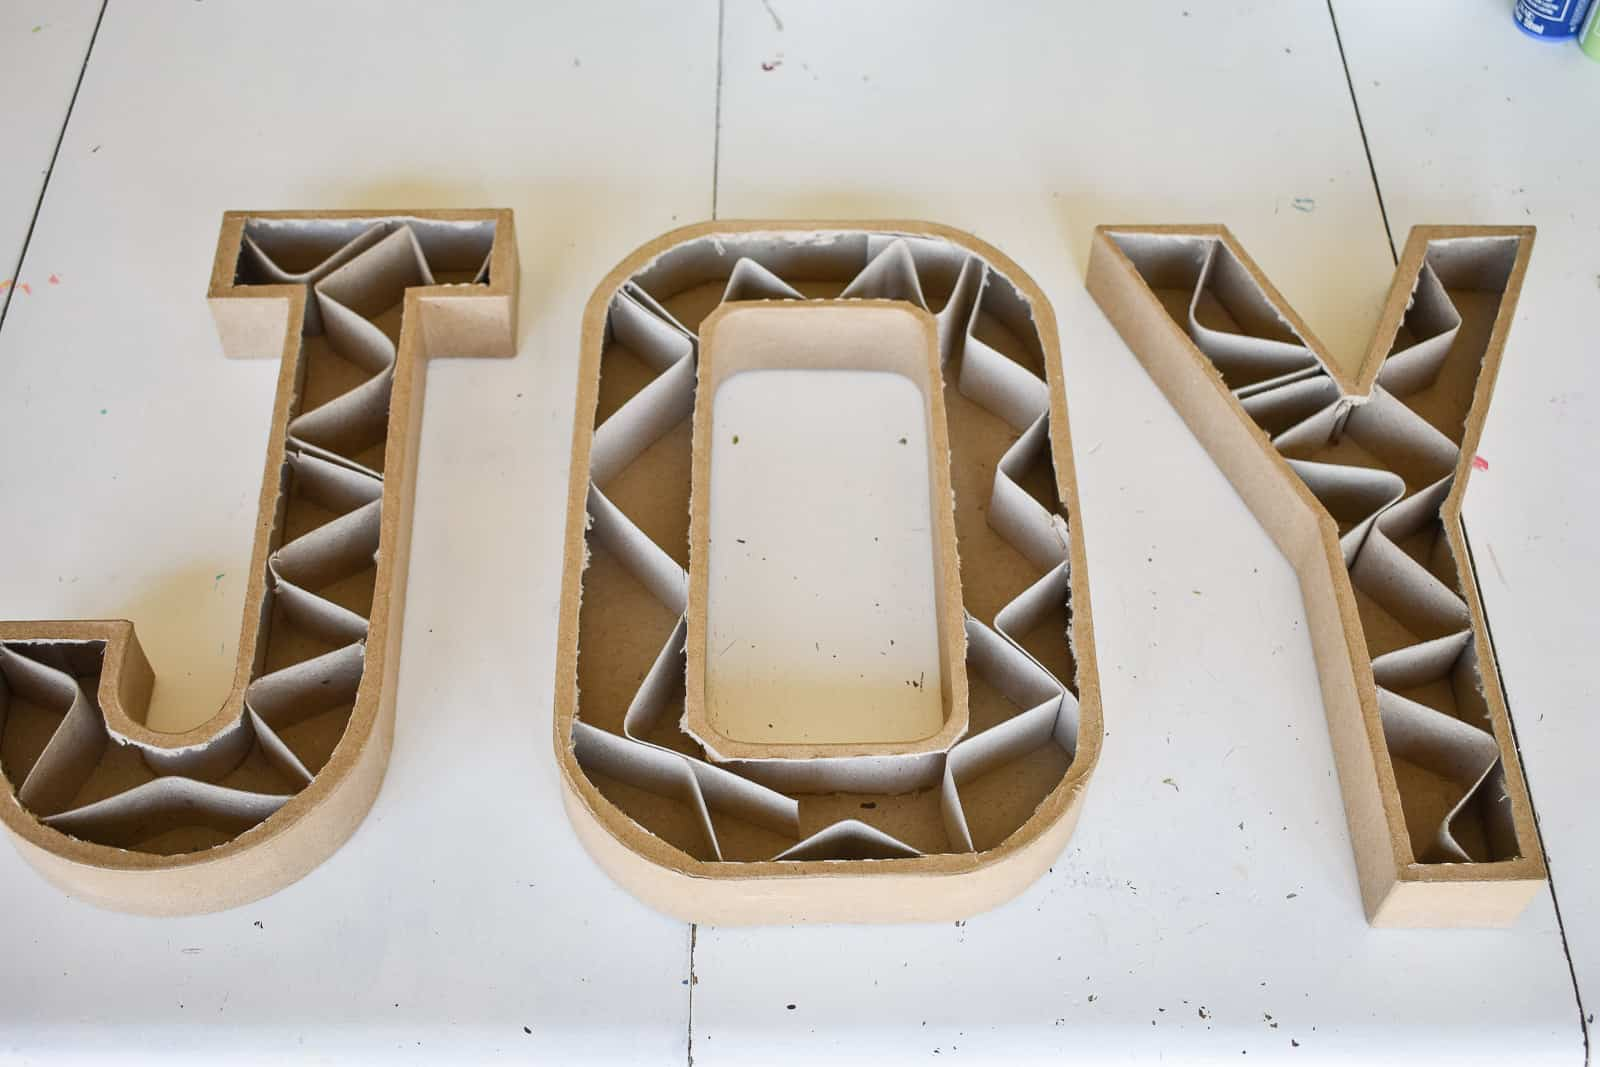 remove inside cardboard of paper mache letters